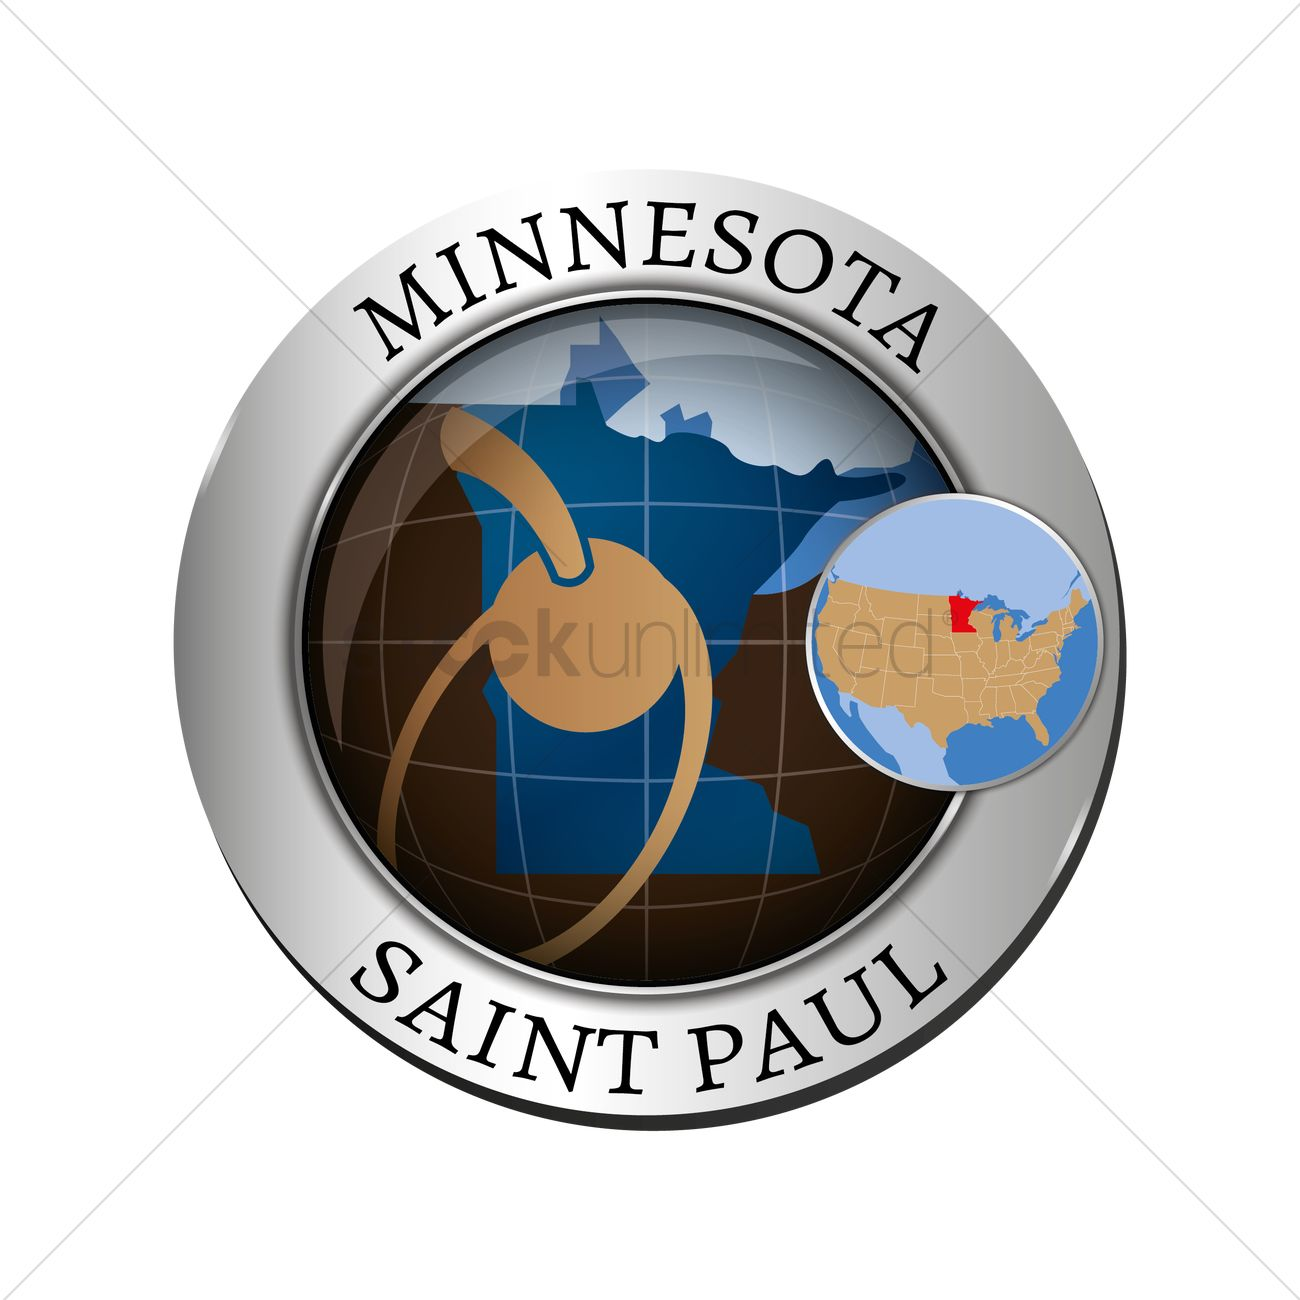 Minnesota State With Spoon Bridge And Cherry Badge Vector Image